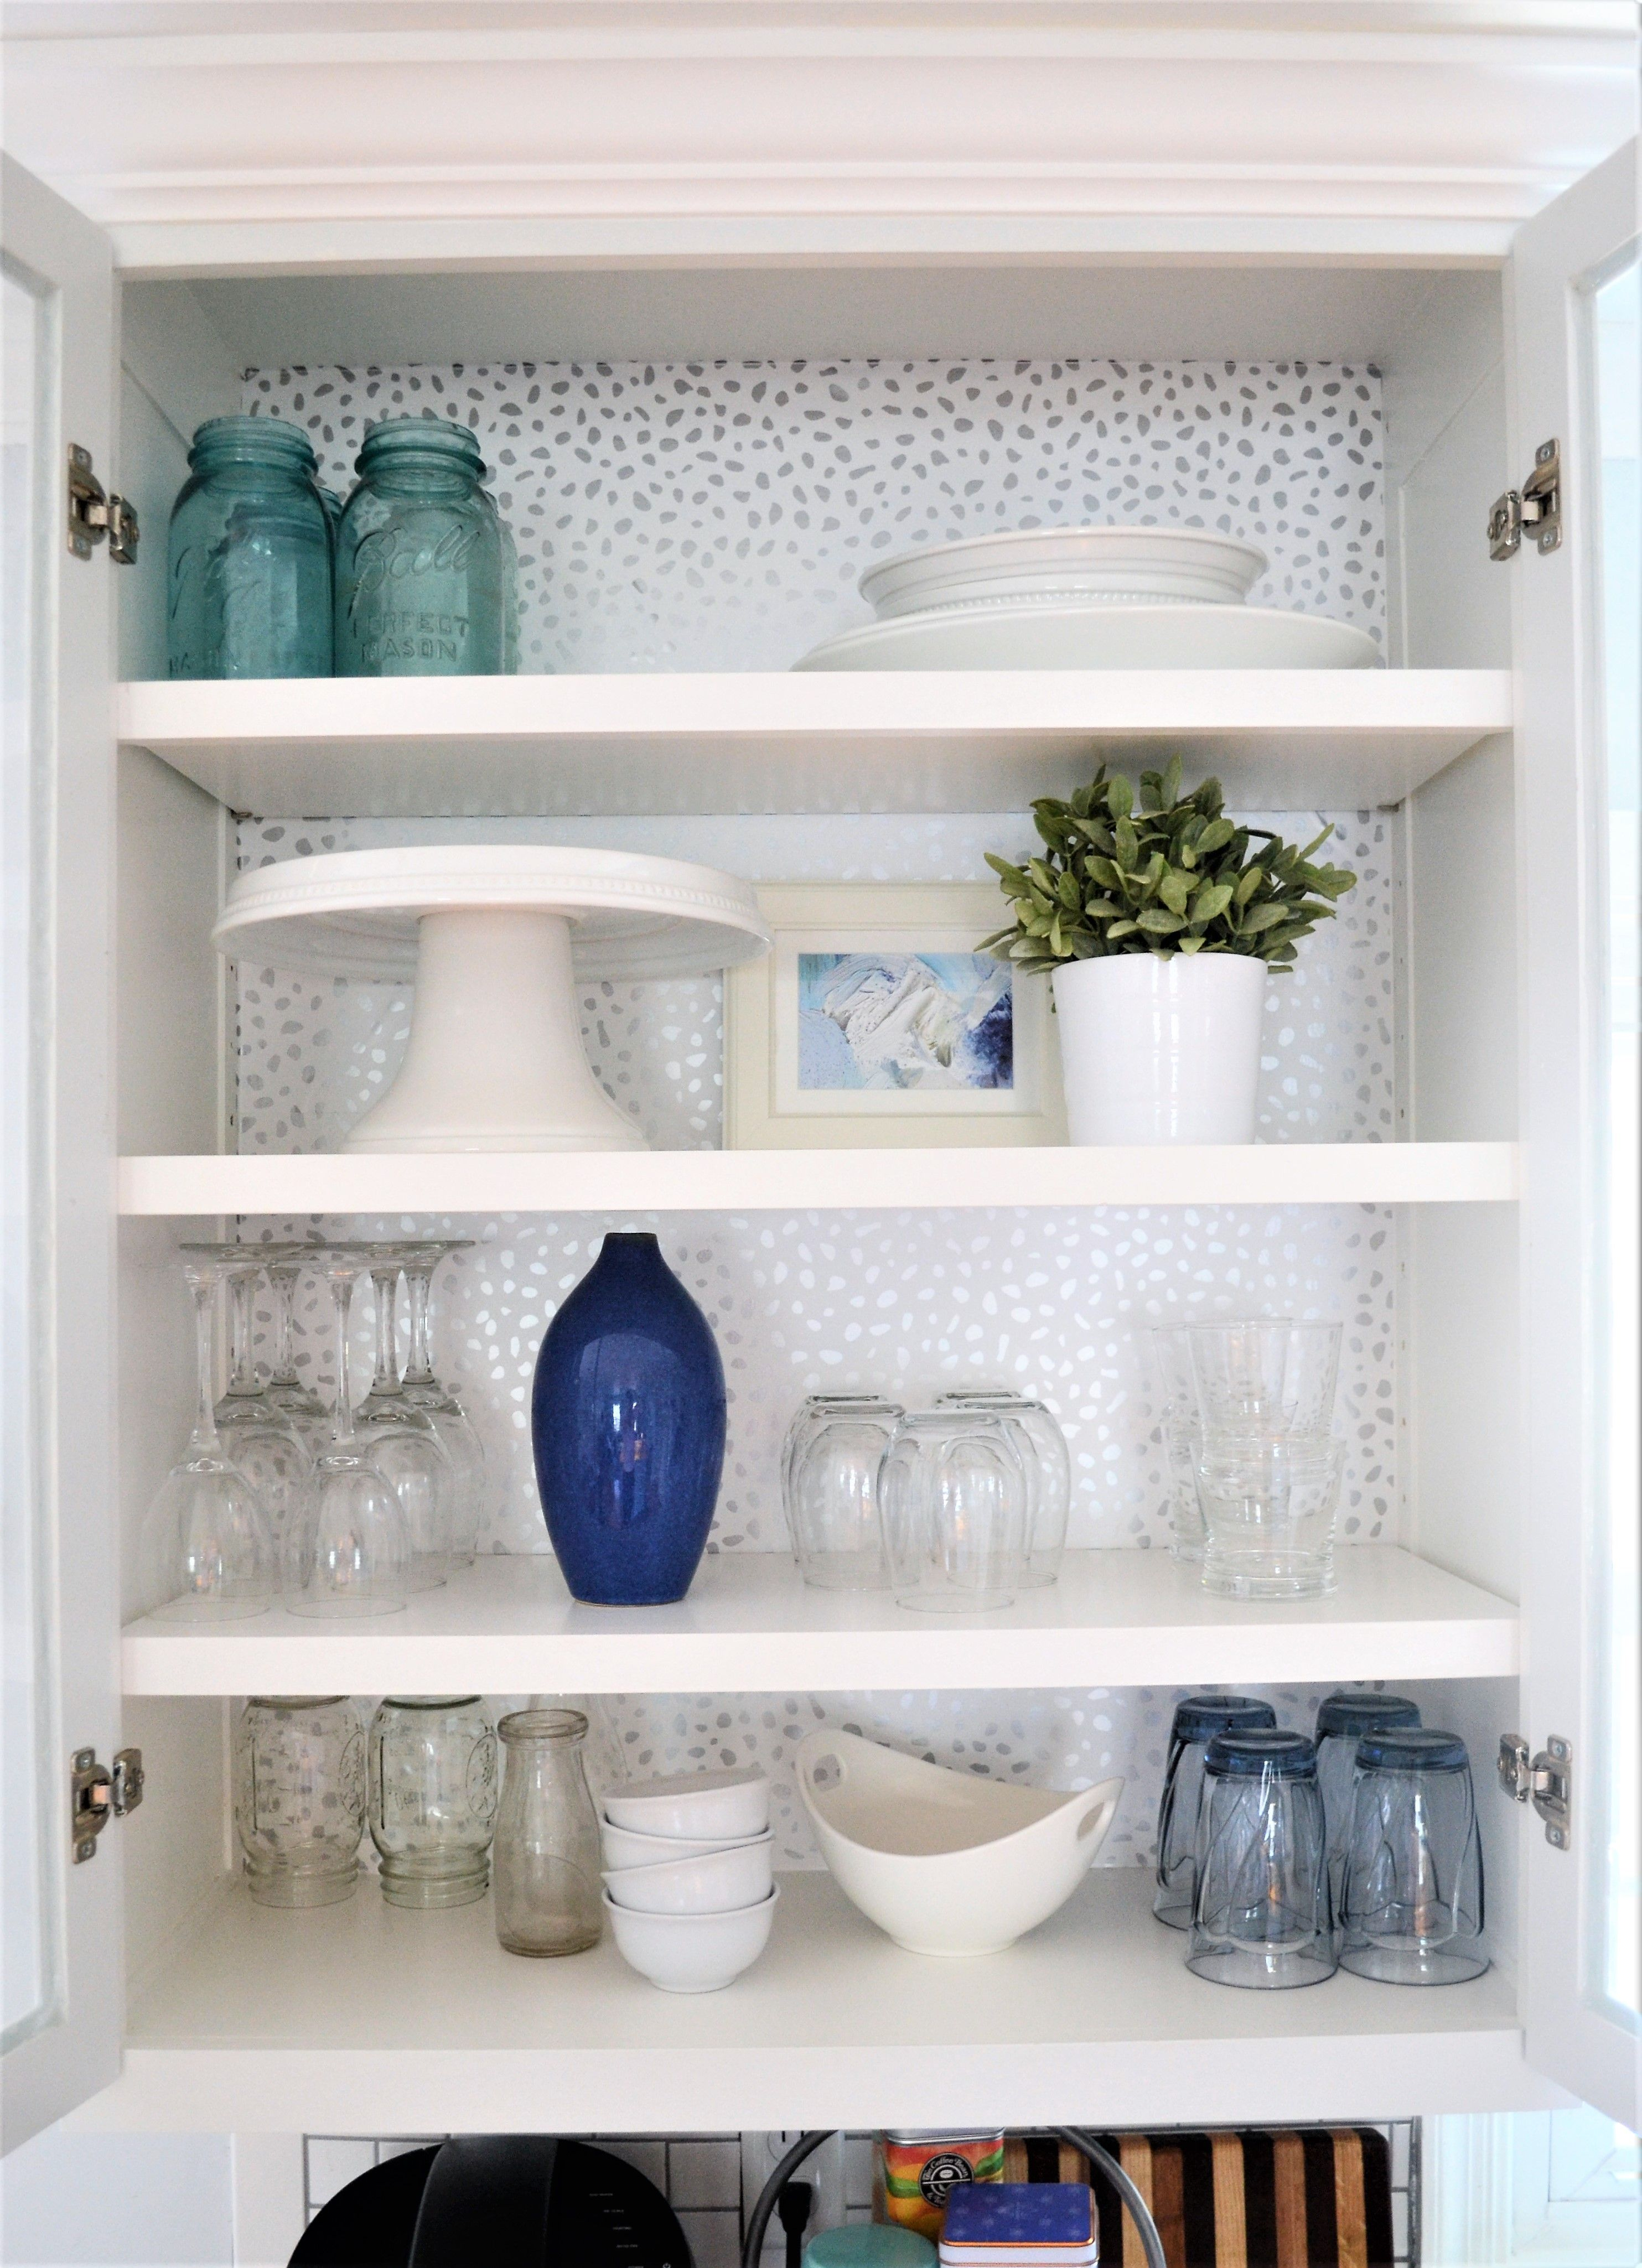 Removable Wallpaper With Devine Color Inside Kitchen Cabinets Kitchen Diy Makeover Glass Kitchen Cabinets